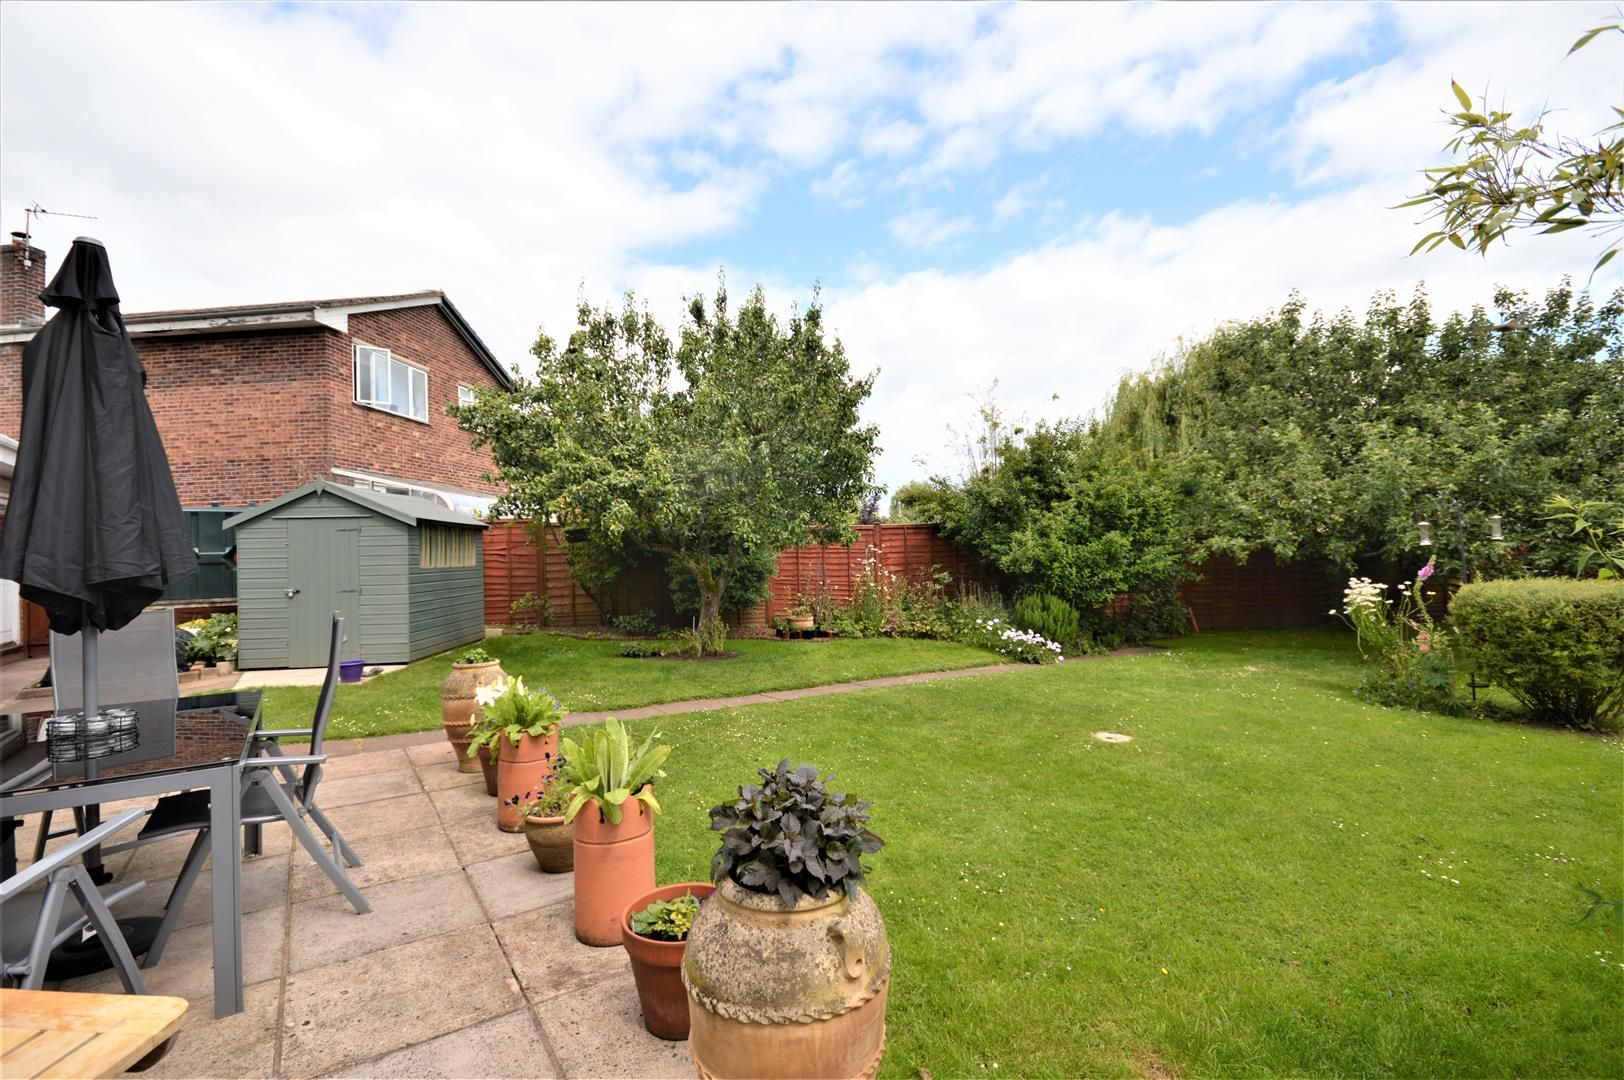 3 bed detached for sale in Kings Caple  - Property Image 8